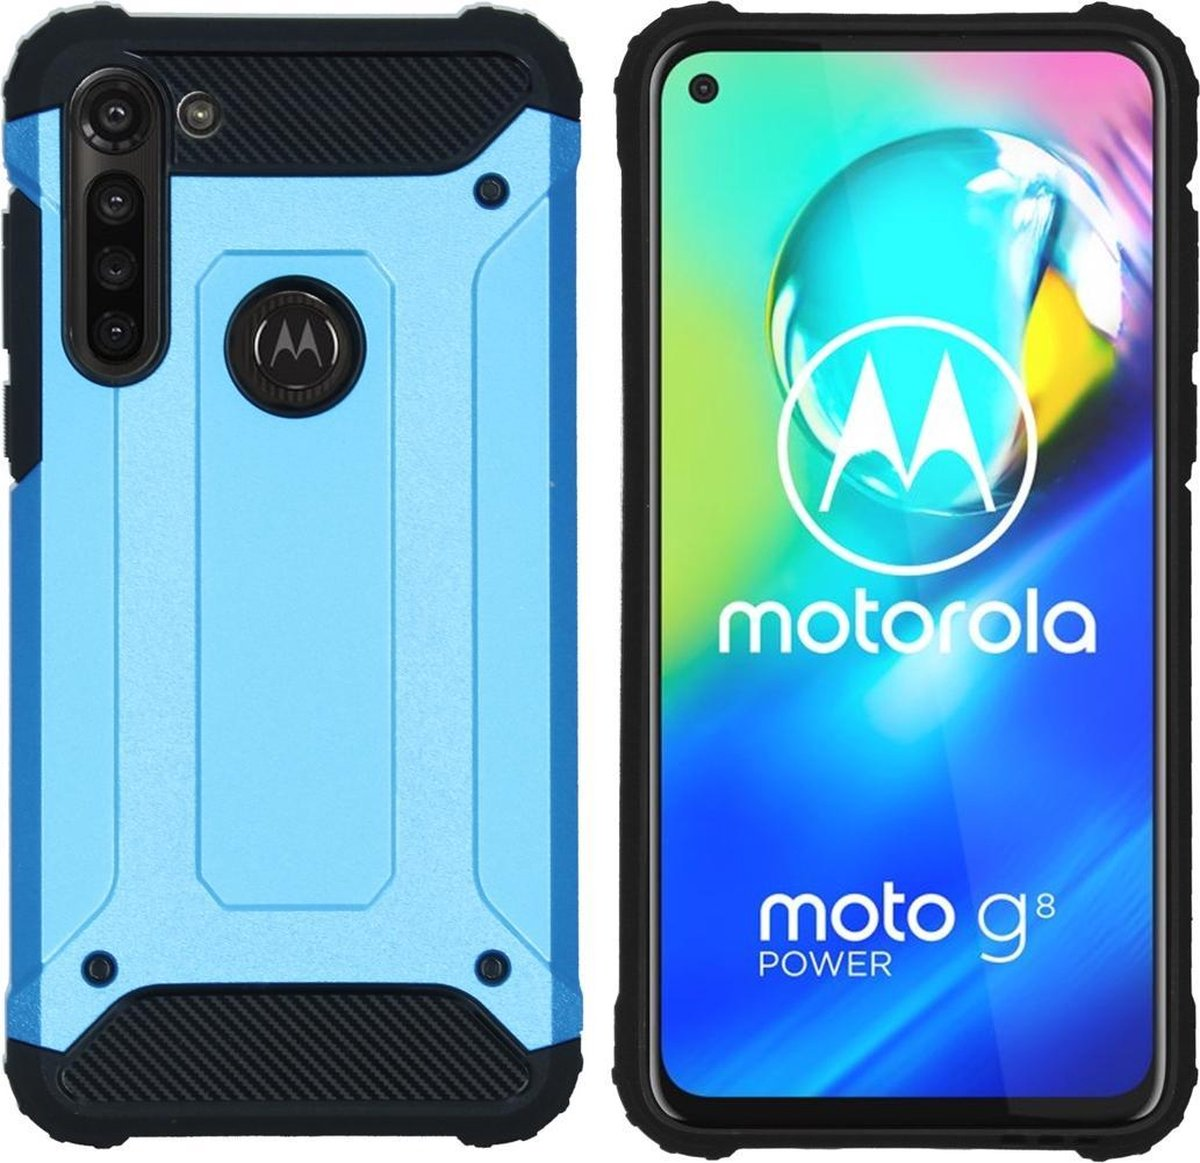 Afbeelding van product iMoshion Rugged Xtreme Backcover Motorola Moto G8 Power hoesje - Lichtblauw